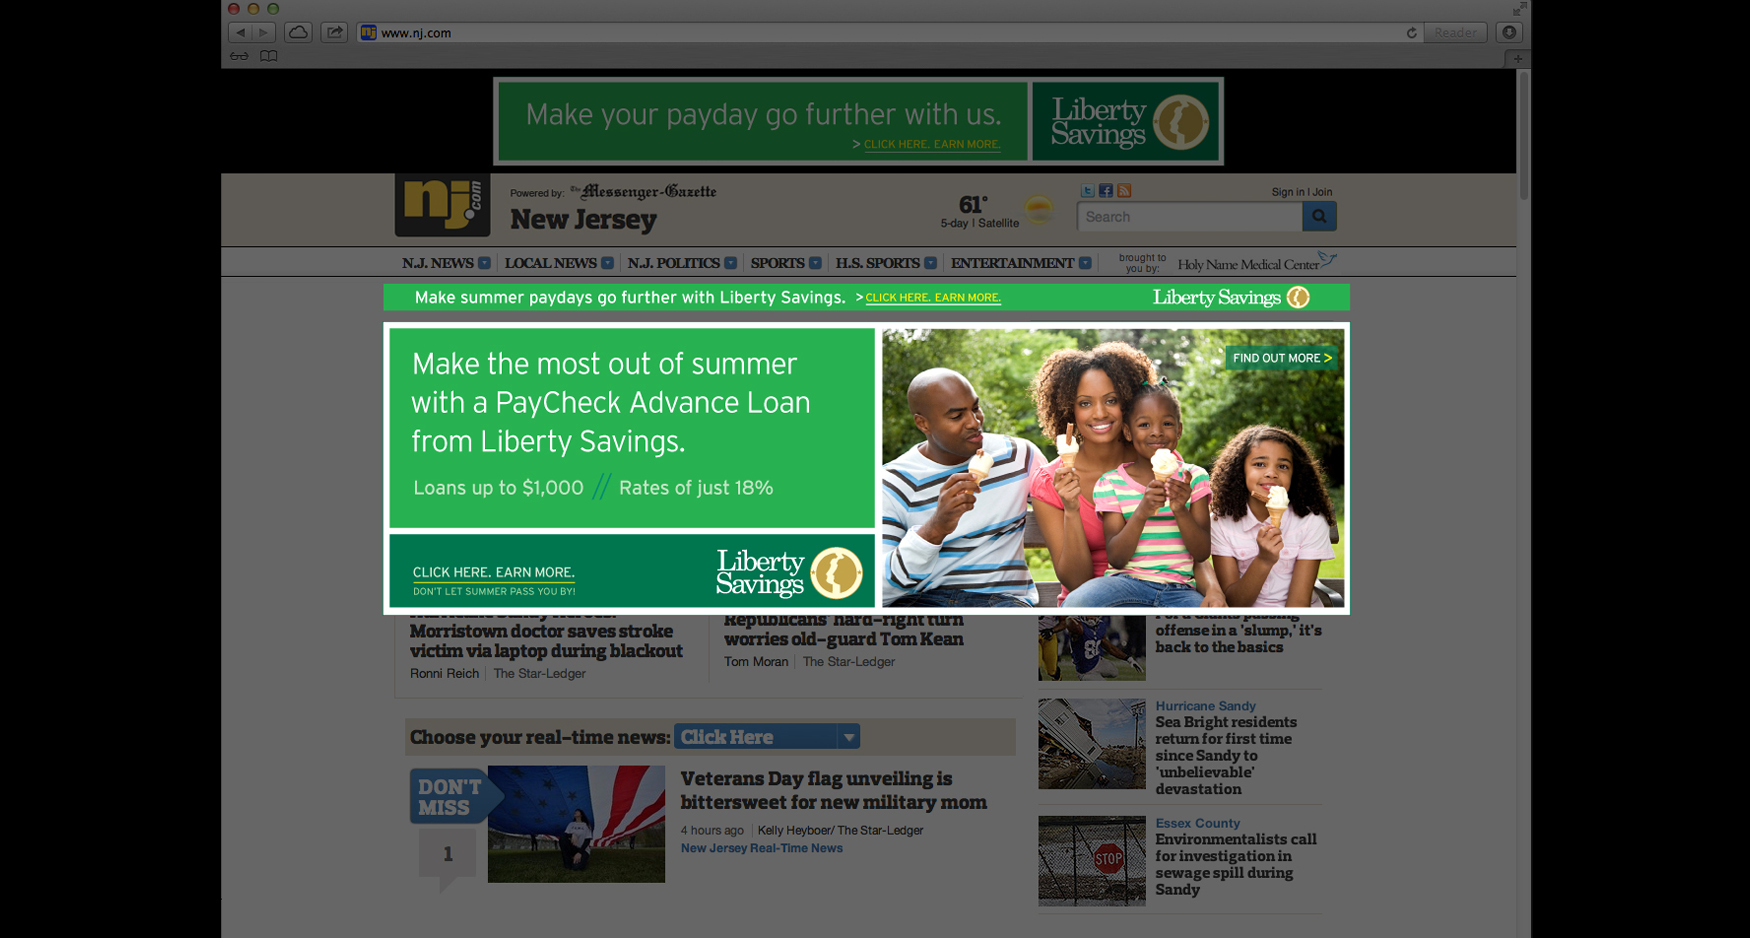 BP Large Website Images251 - LIBERTY SAVINGS - PAYCHECK ADVANCE CAMPAIGN